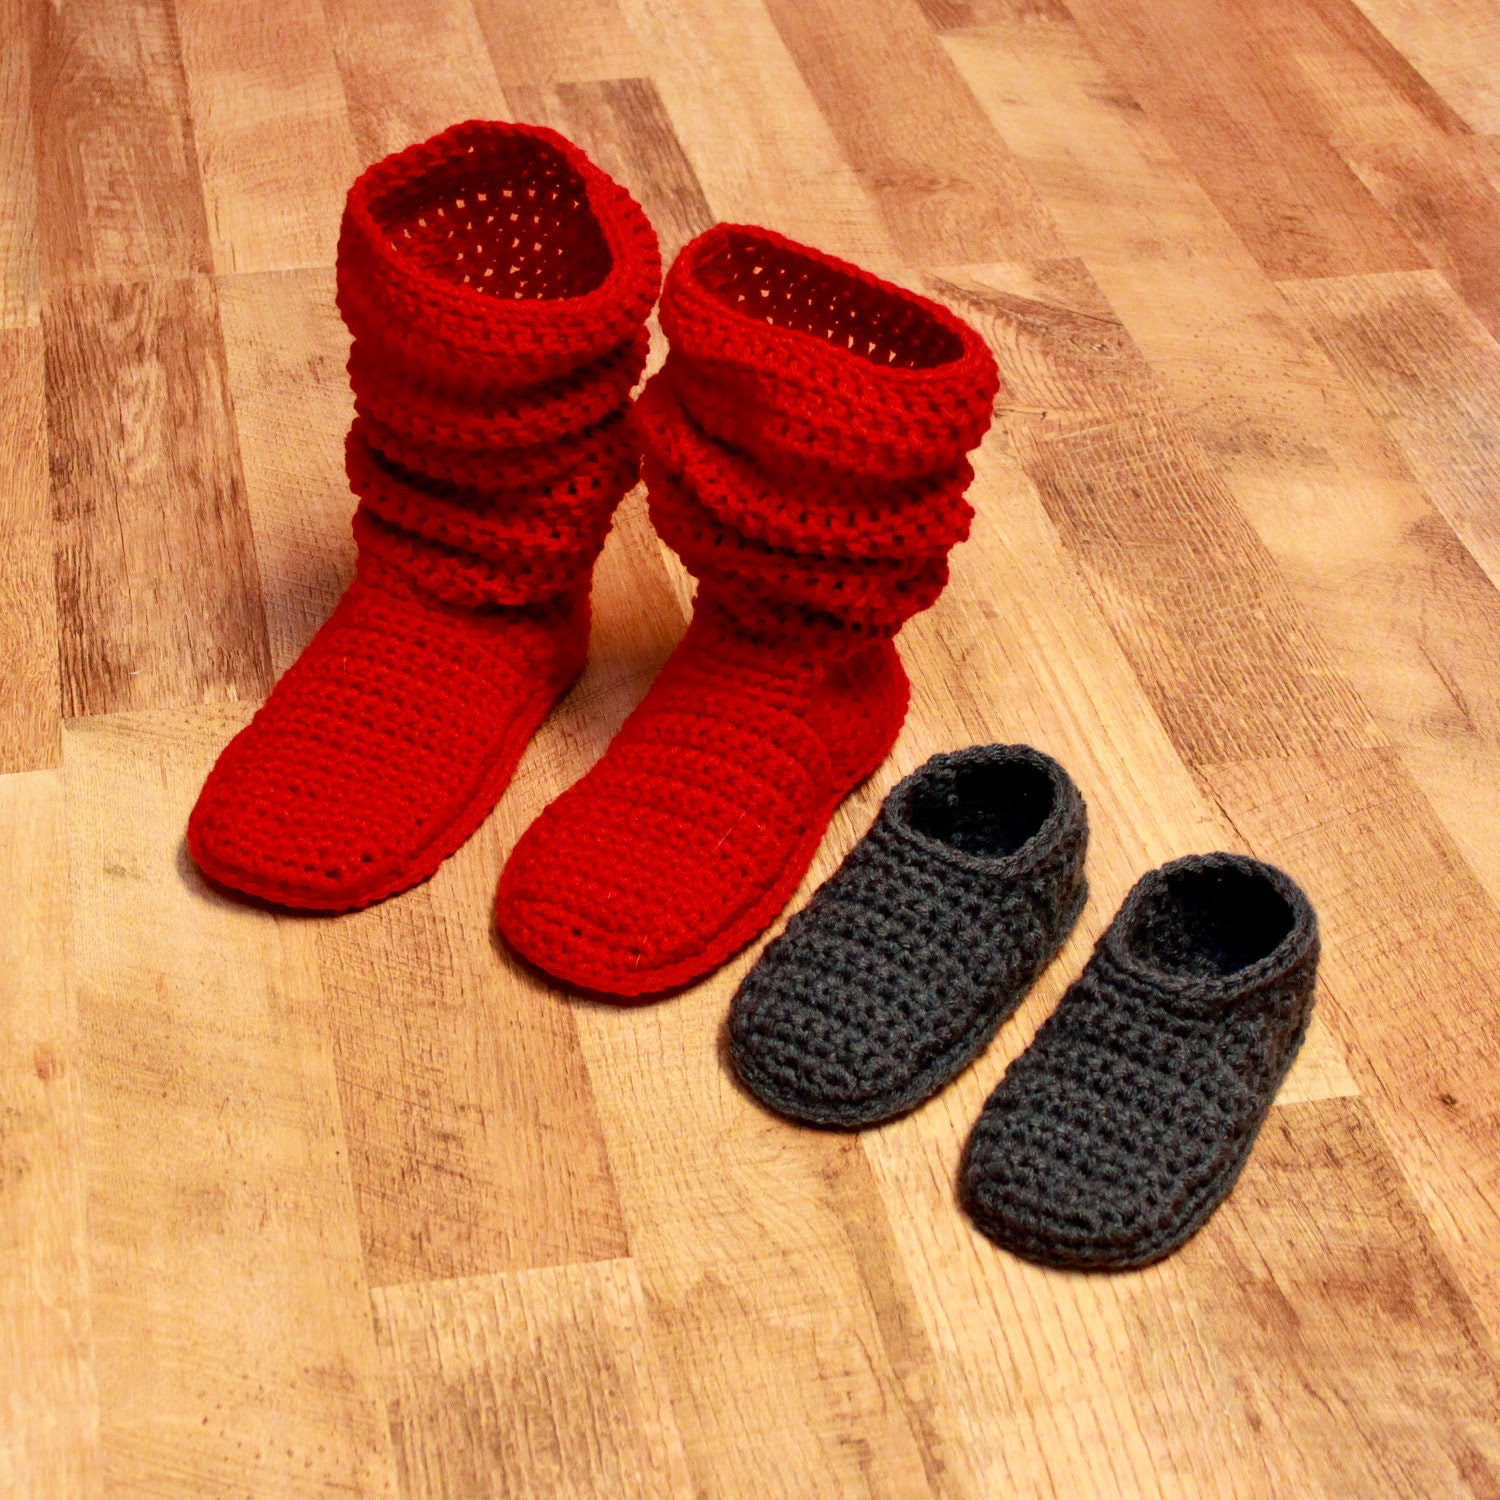 CROCHET PATTERN: Mamachee Boots (Adult Women Sizes) Cable instructions included.